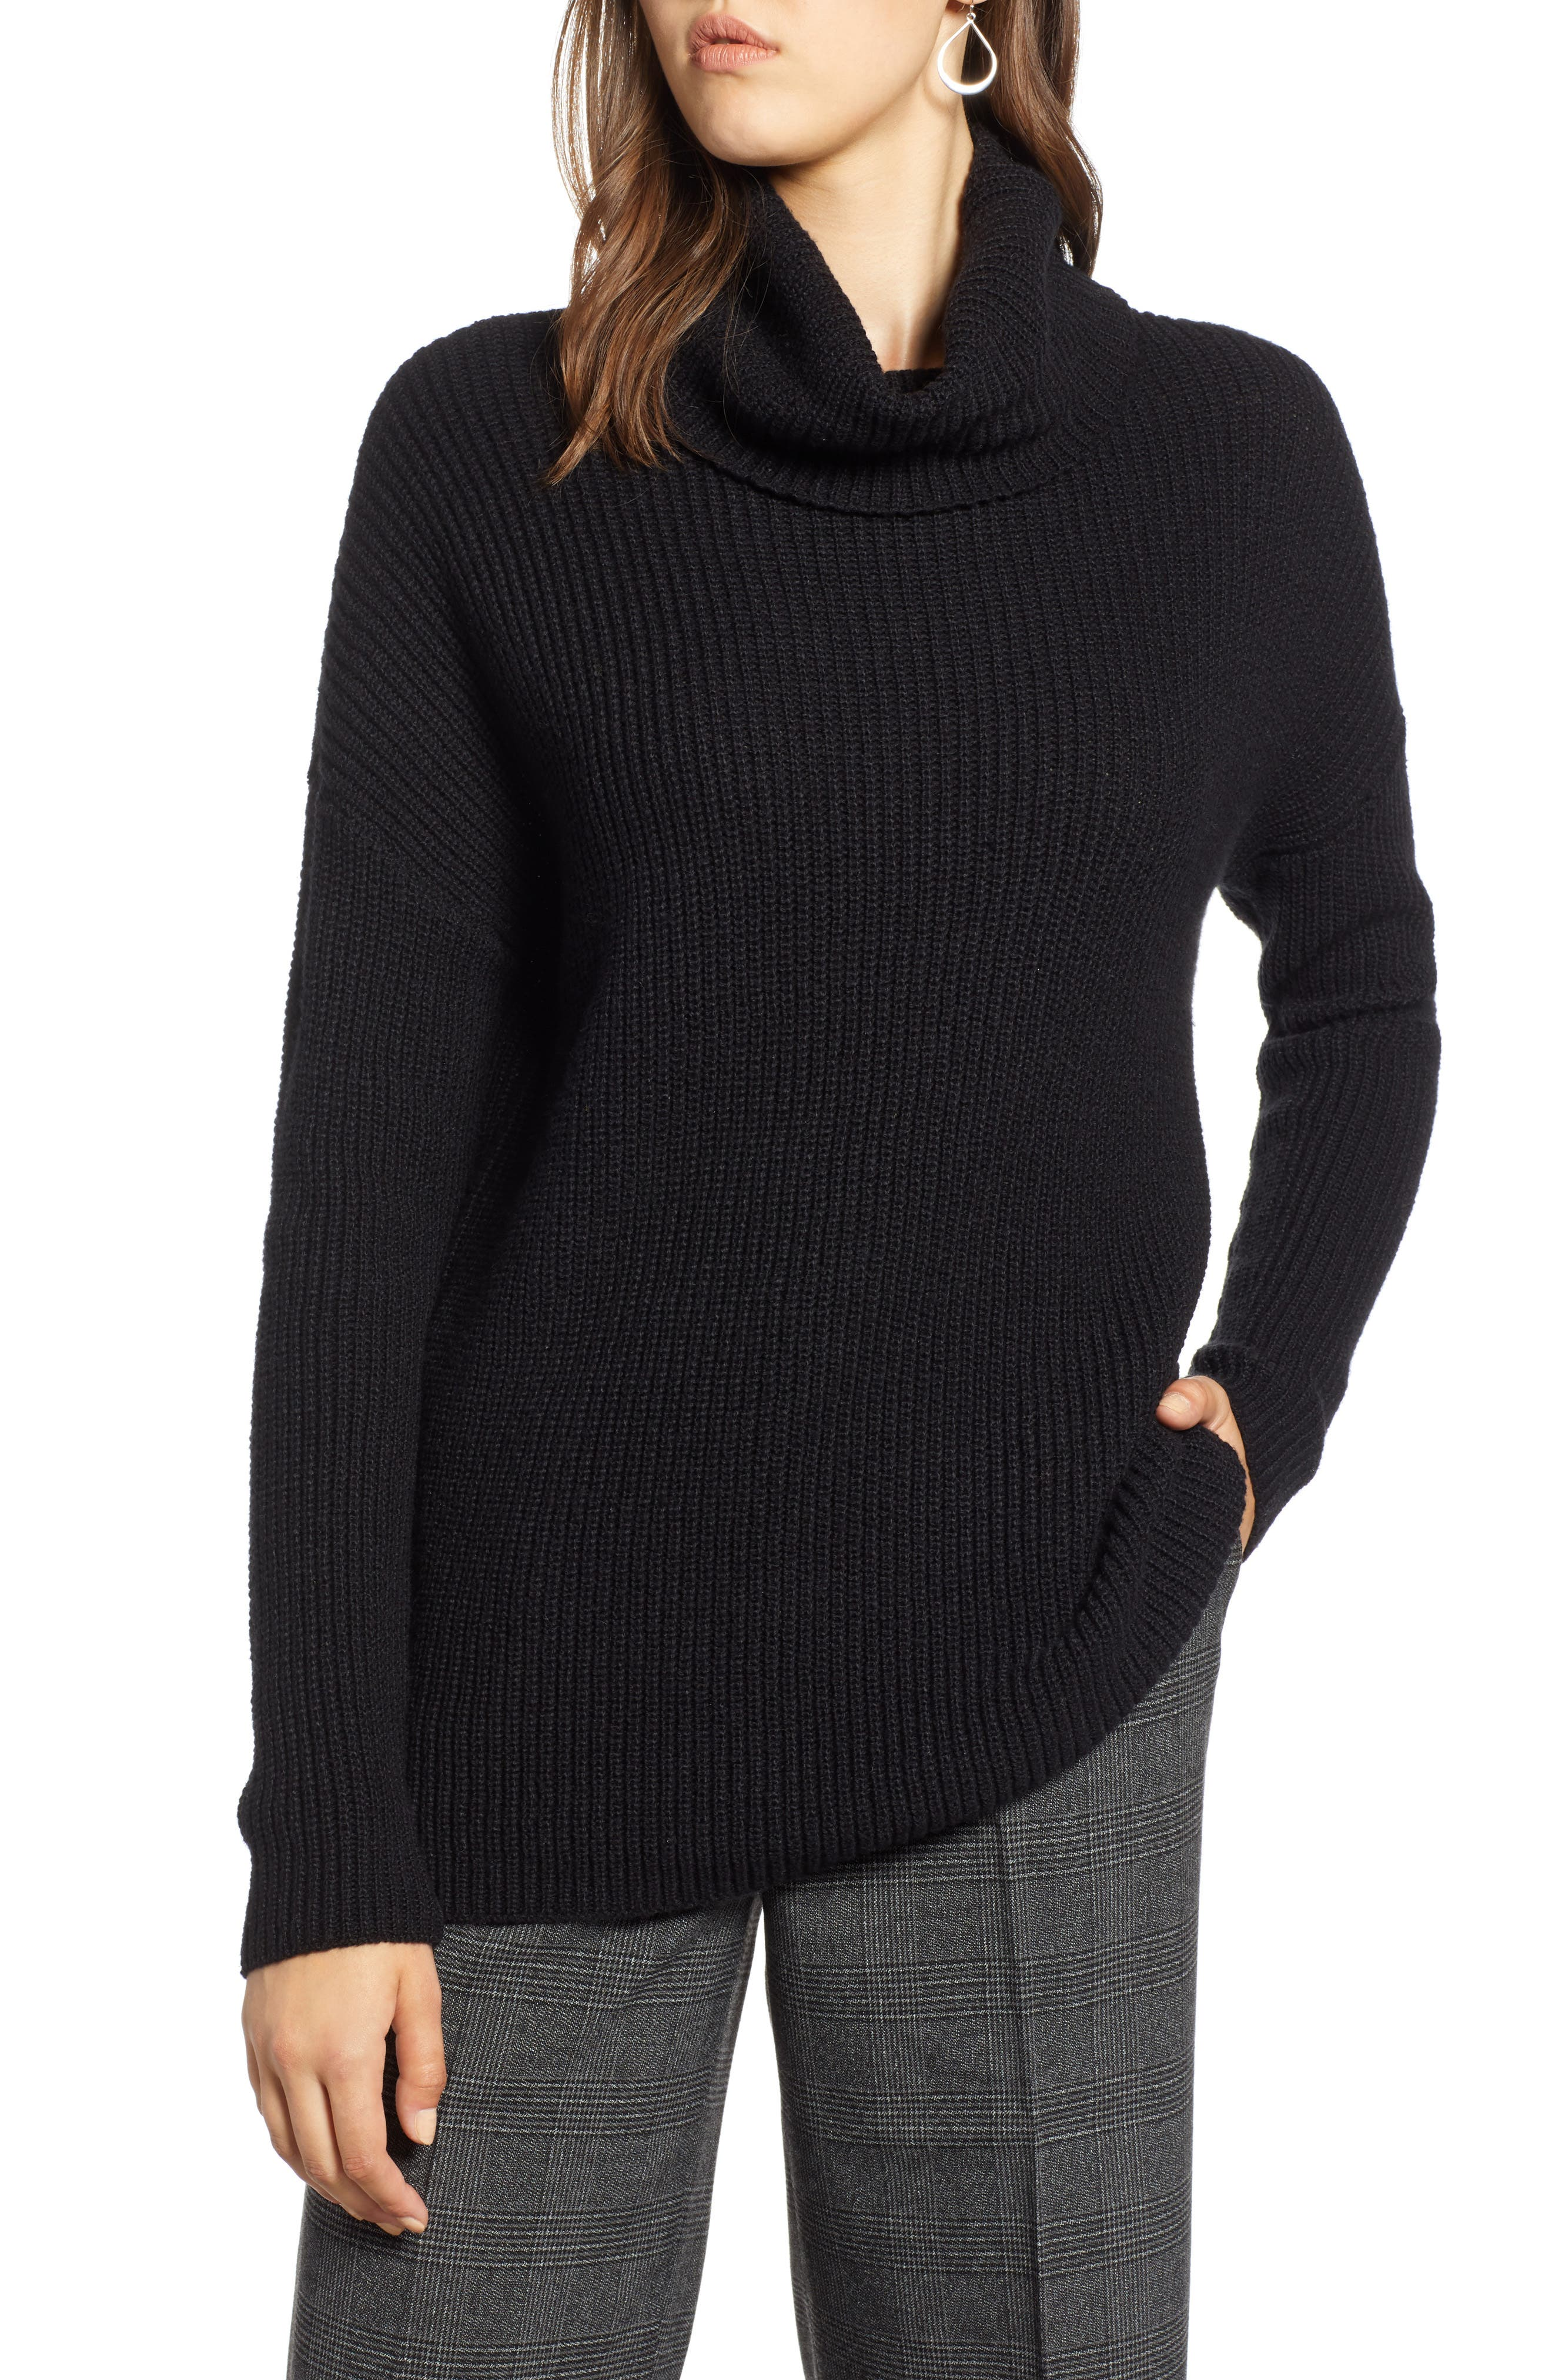 Oversized Turtleneck Tunic Sweater,                             Main thumbnail 1, color,                             001